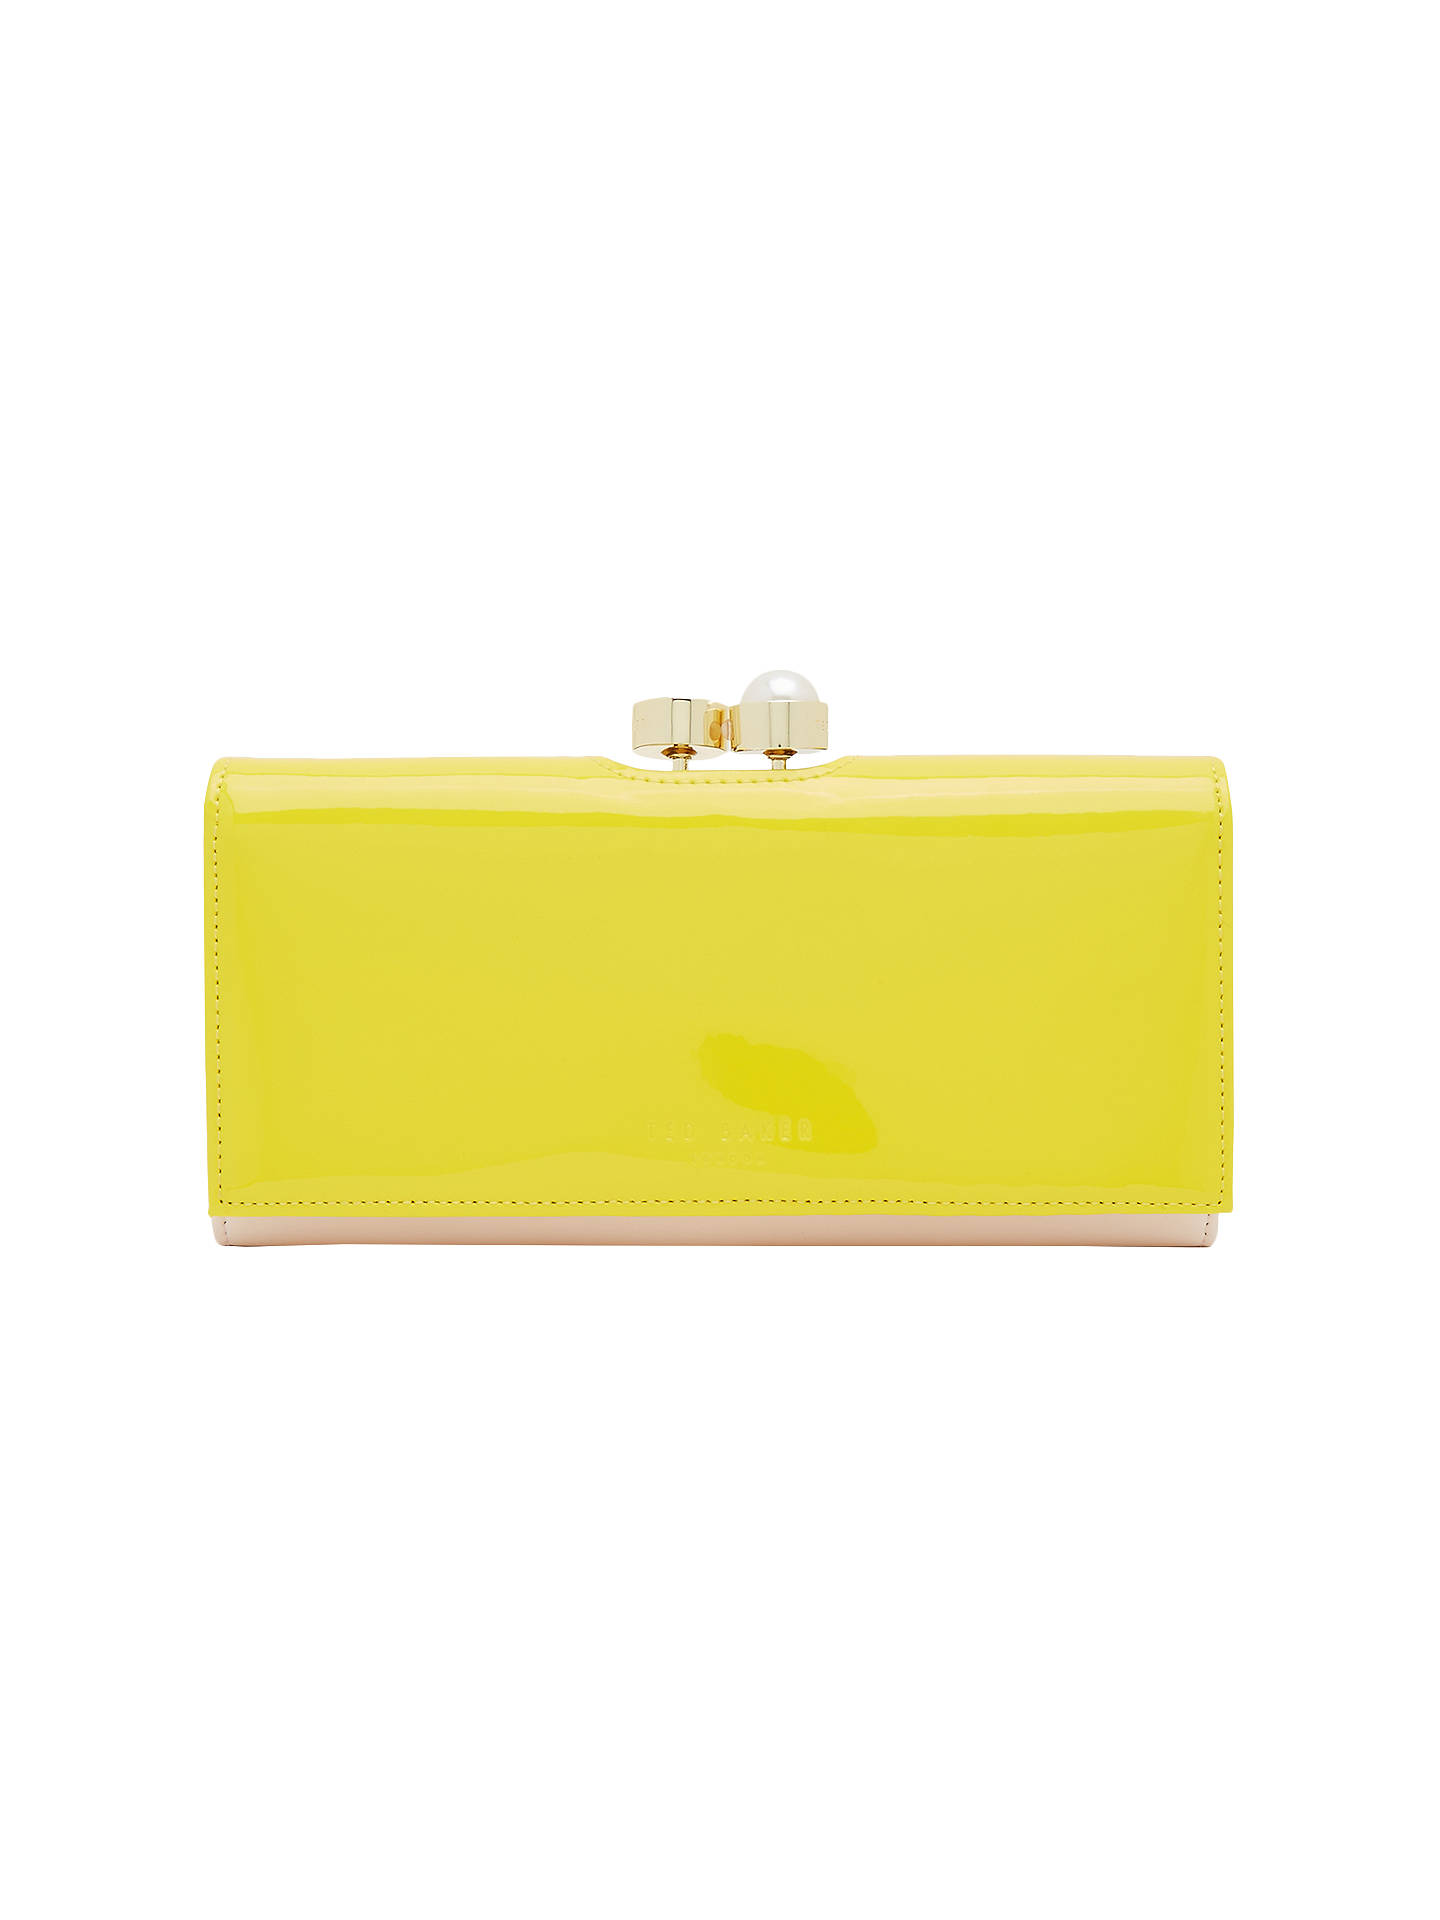 d20bb71fb75 Buy Ted Baker Cecilie Pearl Leather Matinee Purse, Yellow Online at  johnlewis.com ...